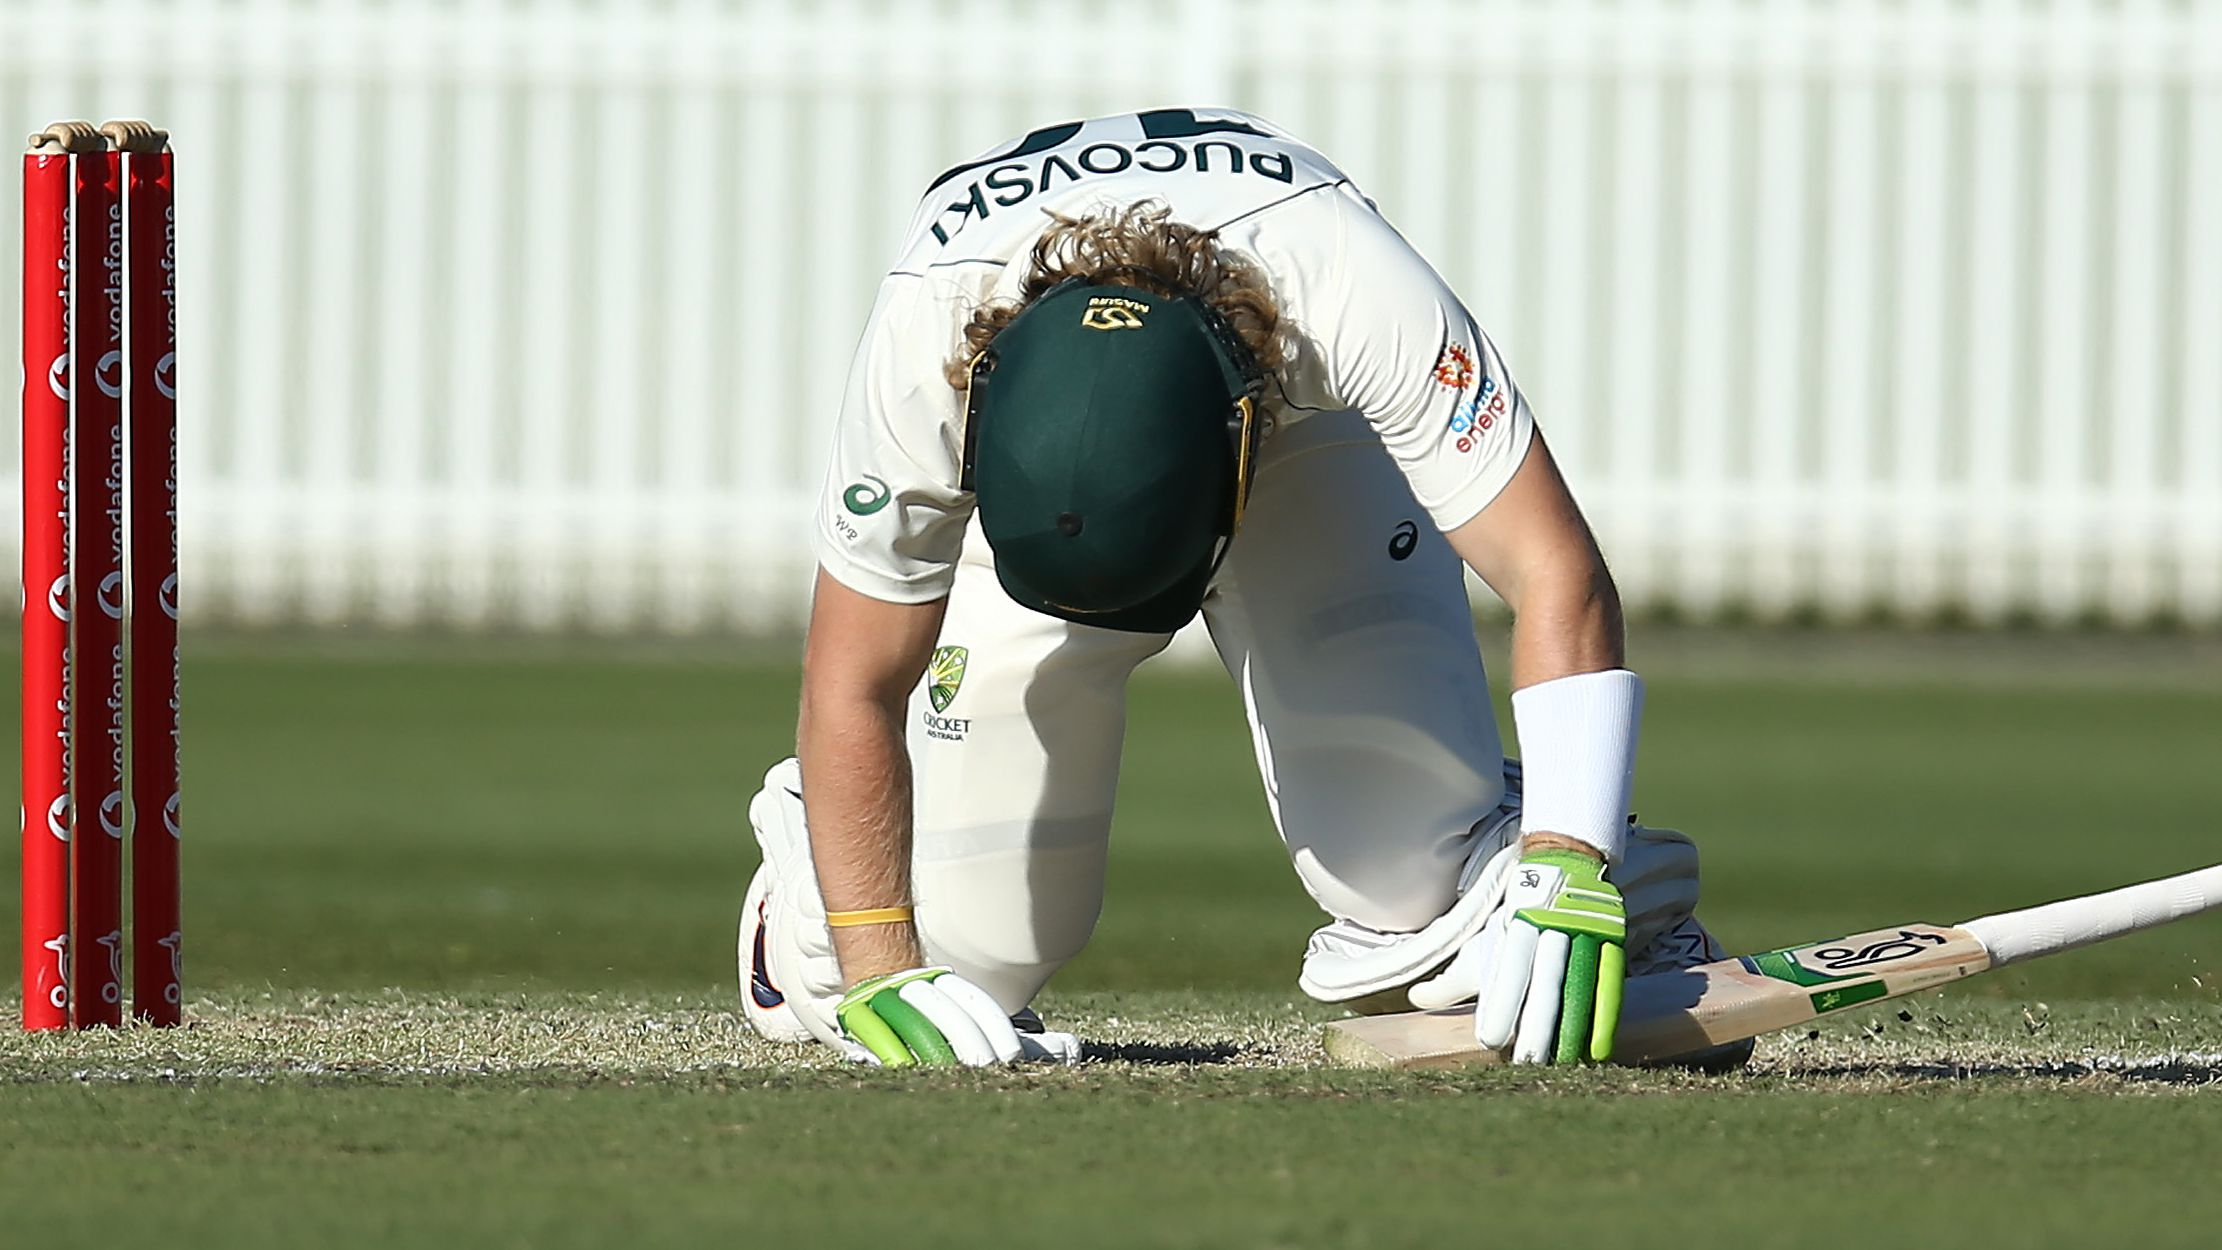 Australia vs India cricket Test news: Will Pucovski ruled out with concussion, Marcus Harris added to squad